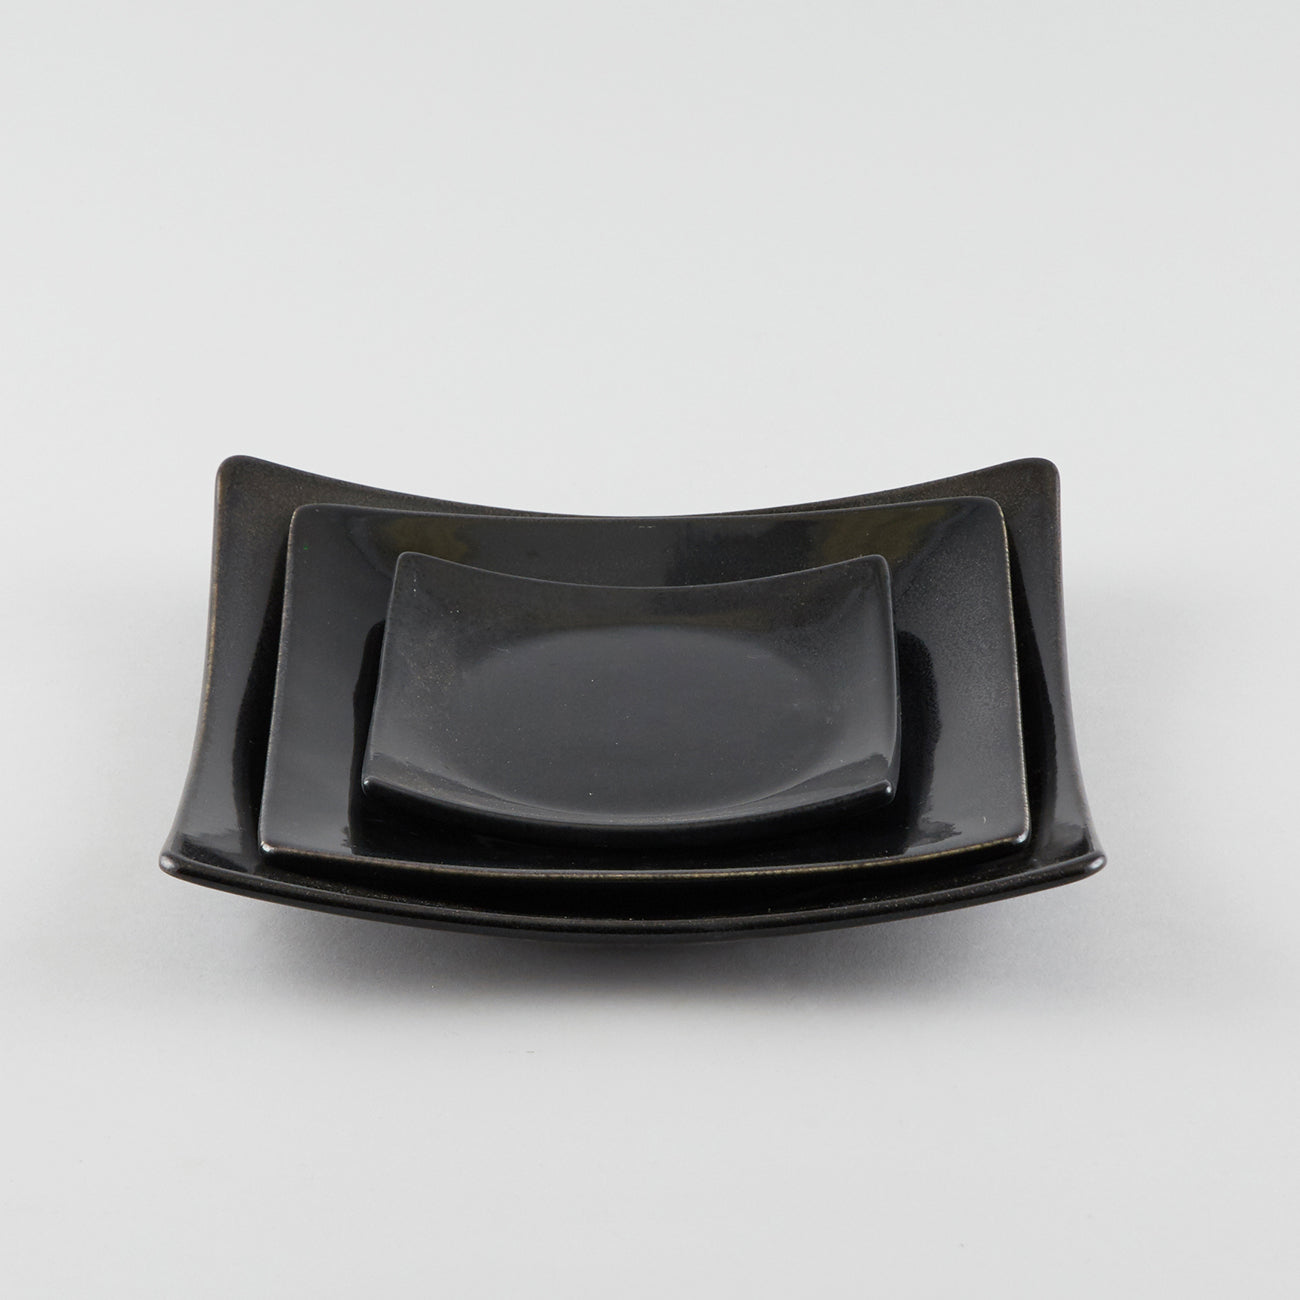 Full-Moon Sq. Plate with Raised Corners - Black (M)